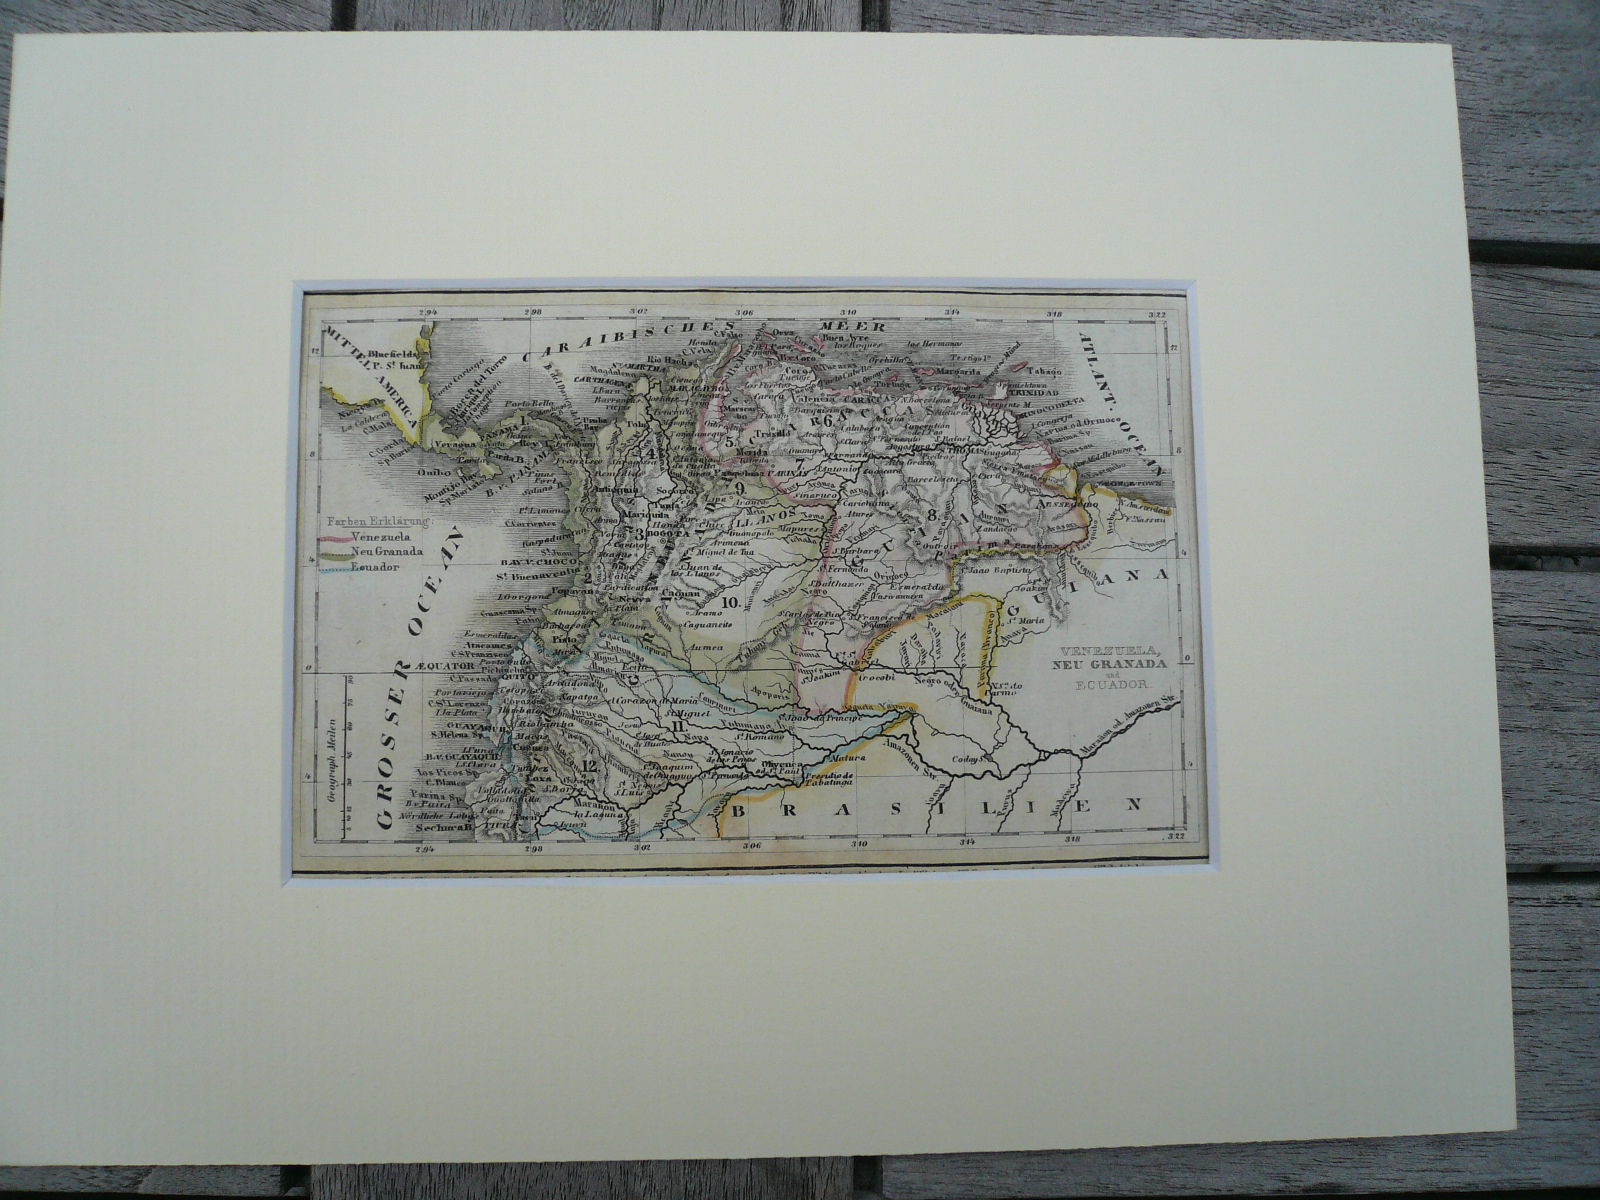 Southamerica, anno 1850, steelengraving